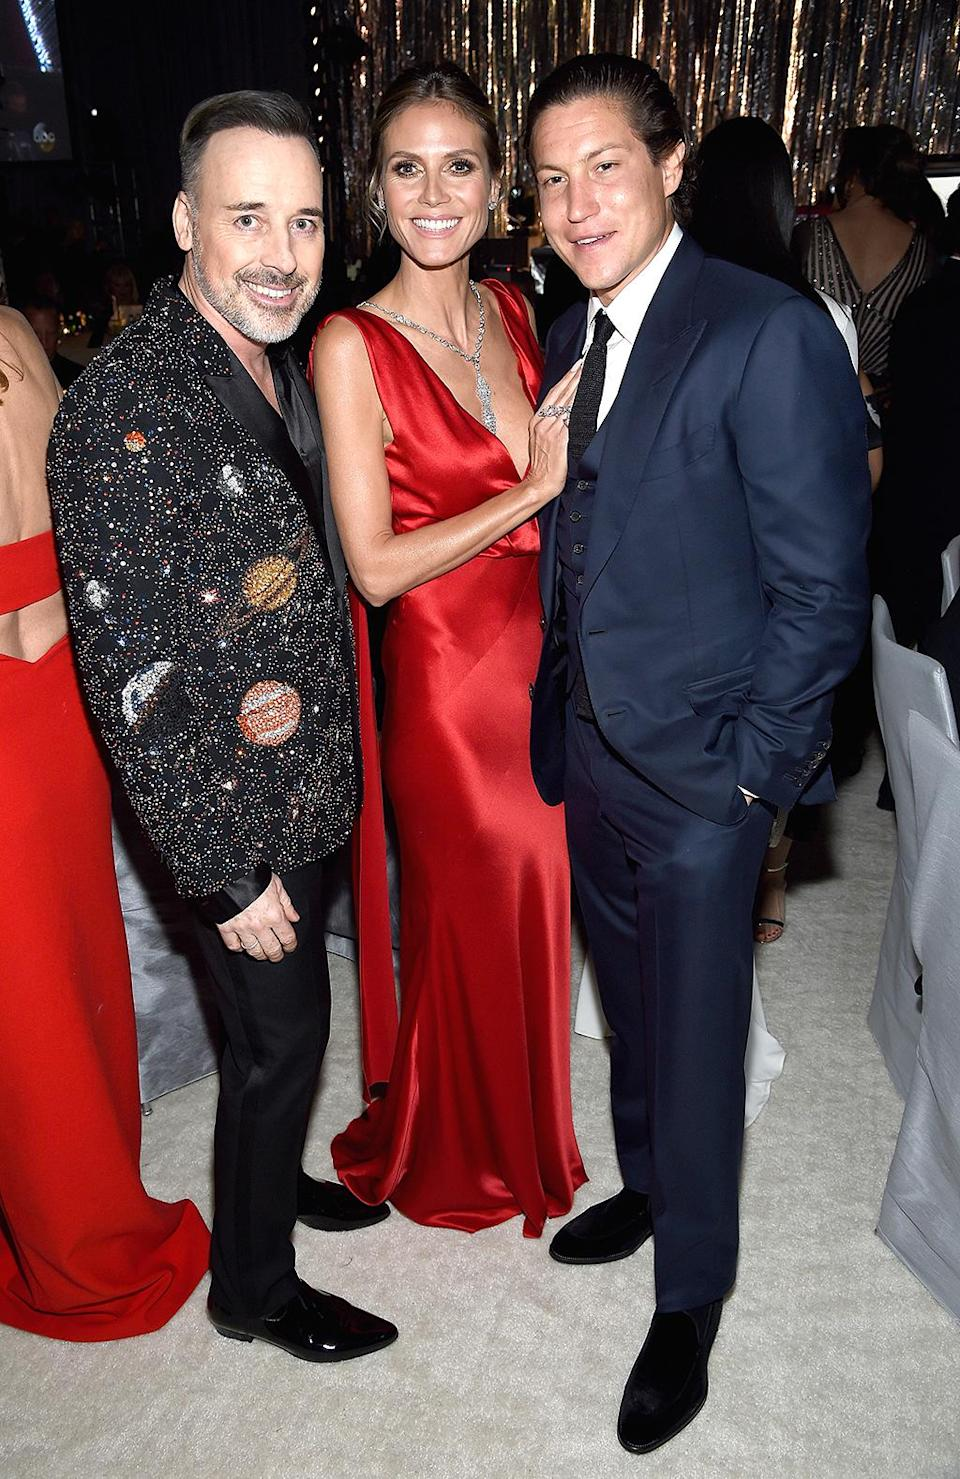 <p>David Furnish and Heidi Klum attends the 25th Annual Elton John AIDS Foundation's Academy Awards Viewing Party at The City of West Hollywood Park on February 26, 2017 in West Hollywood, California. (Photo by Dimitrios Kambouris/Getty Images for EJAF) </p>